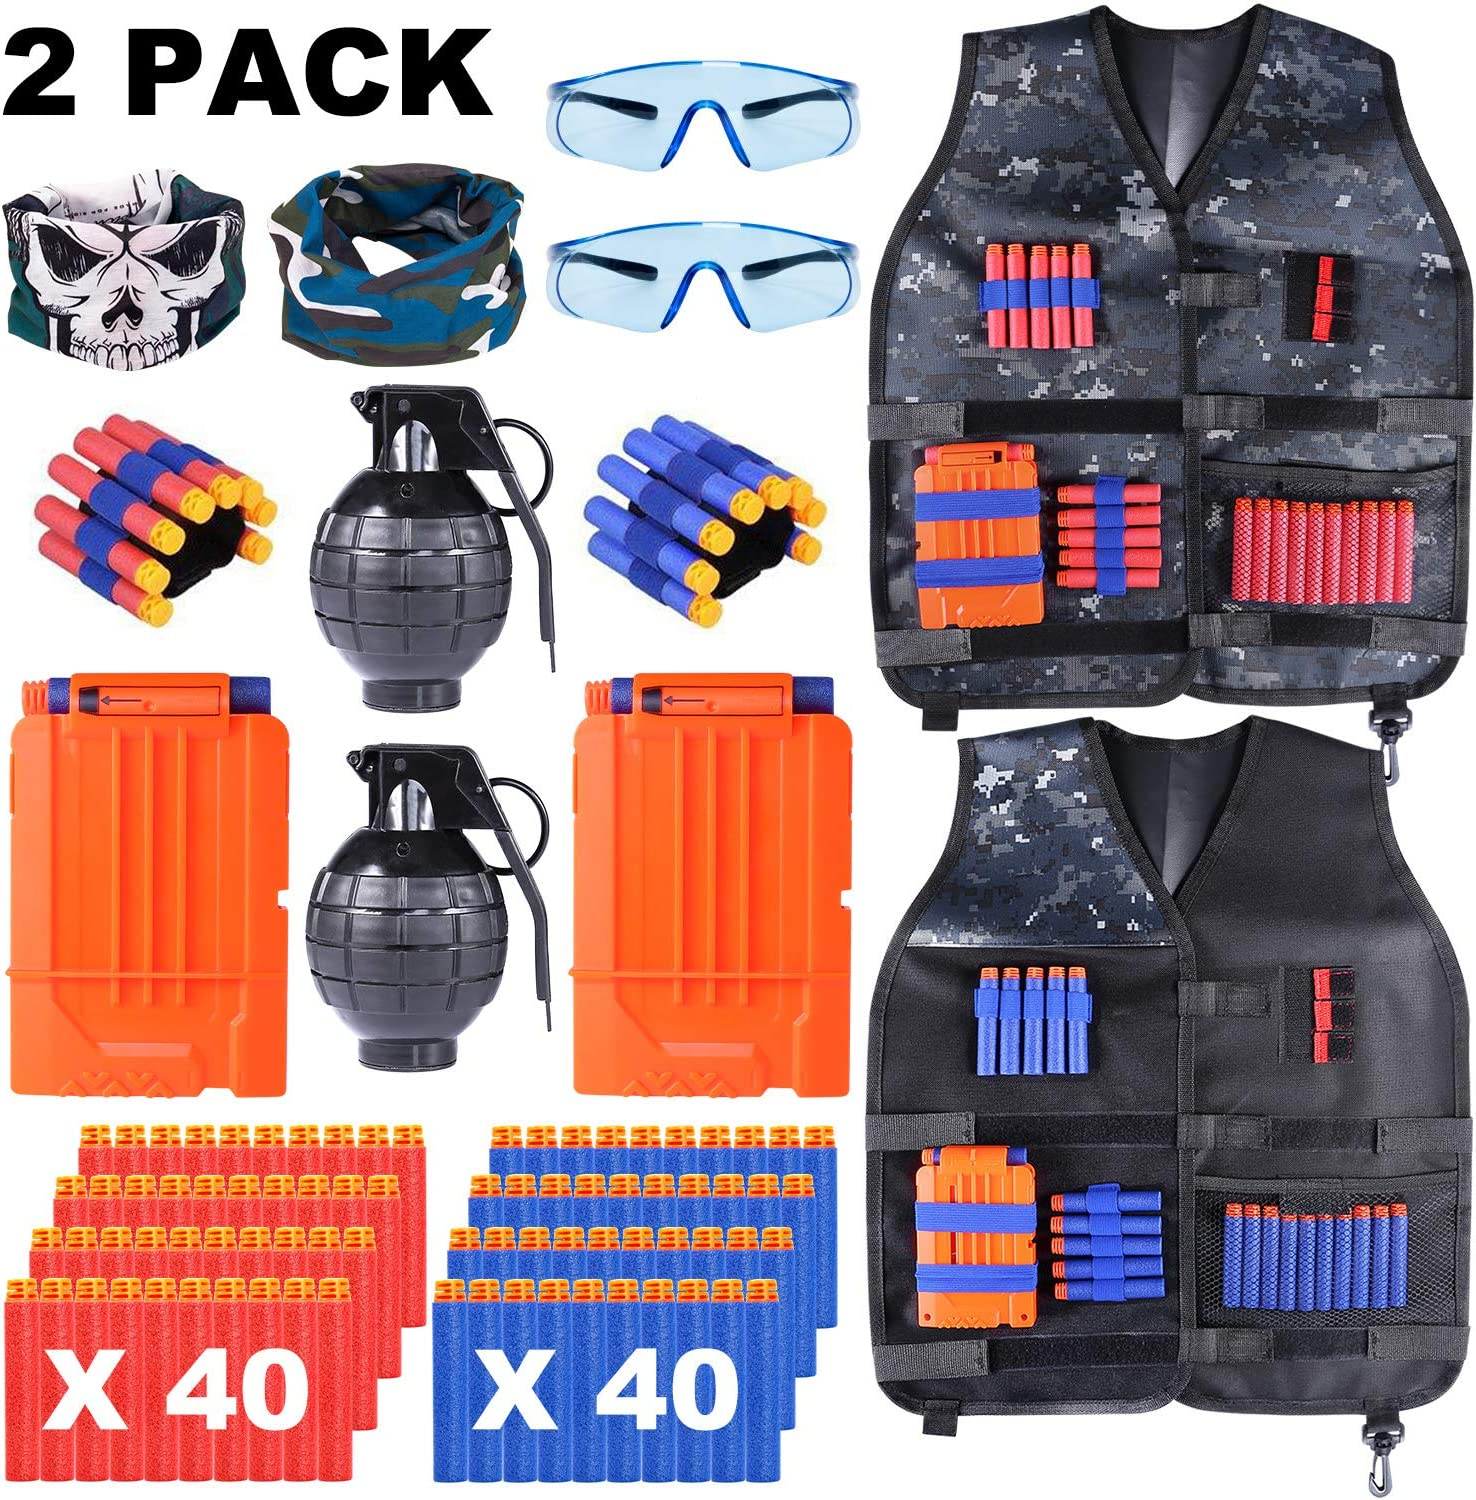 TEPSMIGO 2 Pack Kids Tactical Vest Kit with Refill Darts, Reload Clips, Tactical Mask, Wrist Band, Protective Glasses and Grenade Toy for Boys and Girls